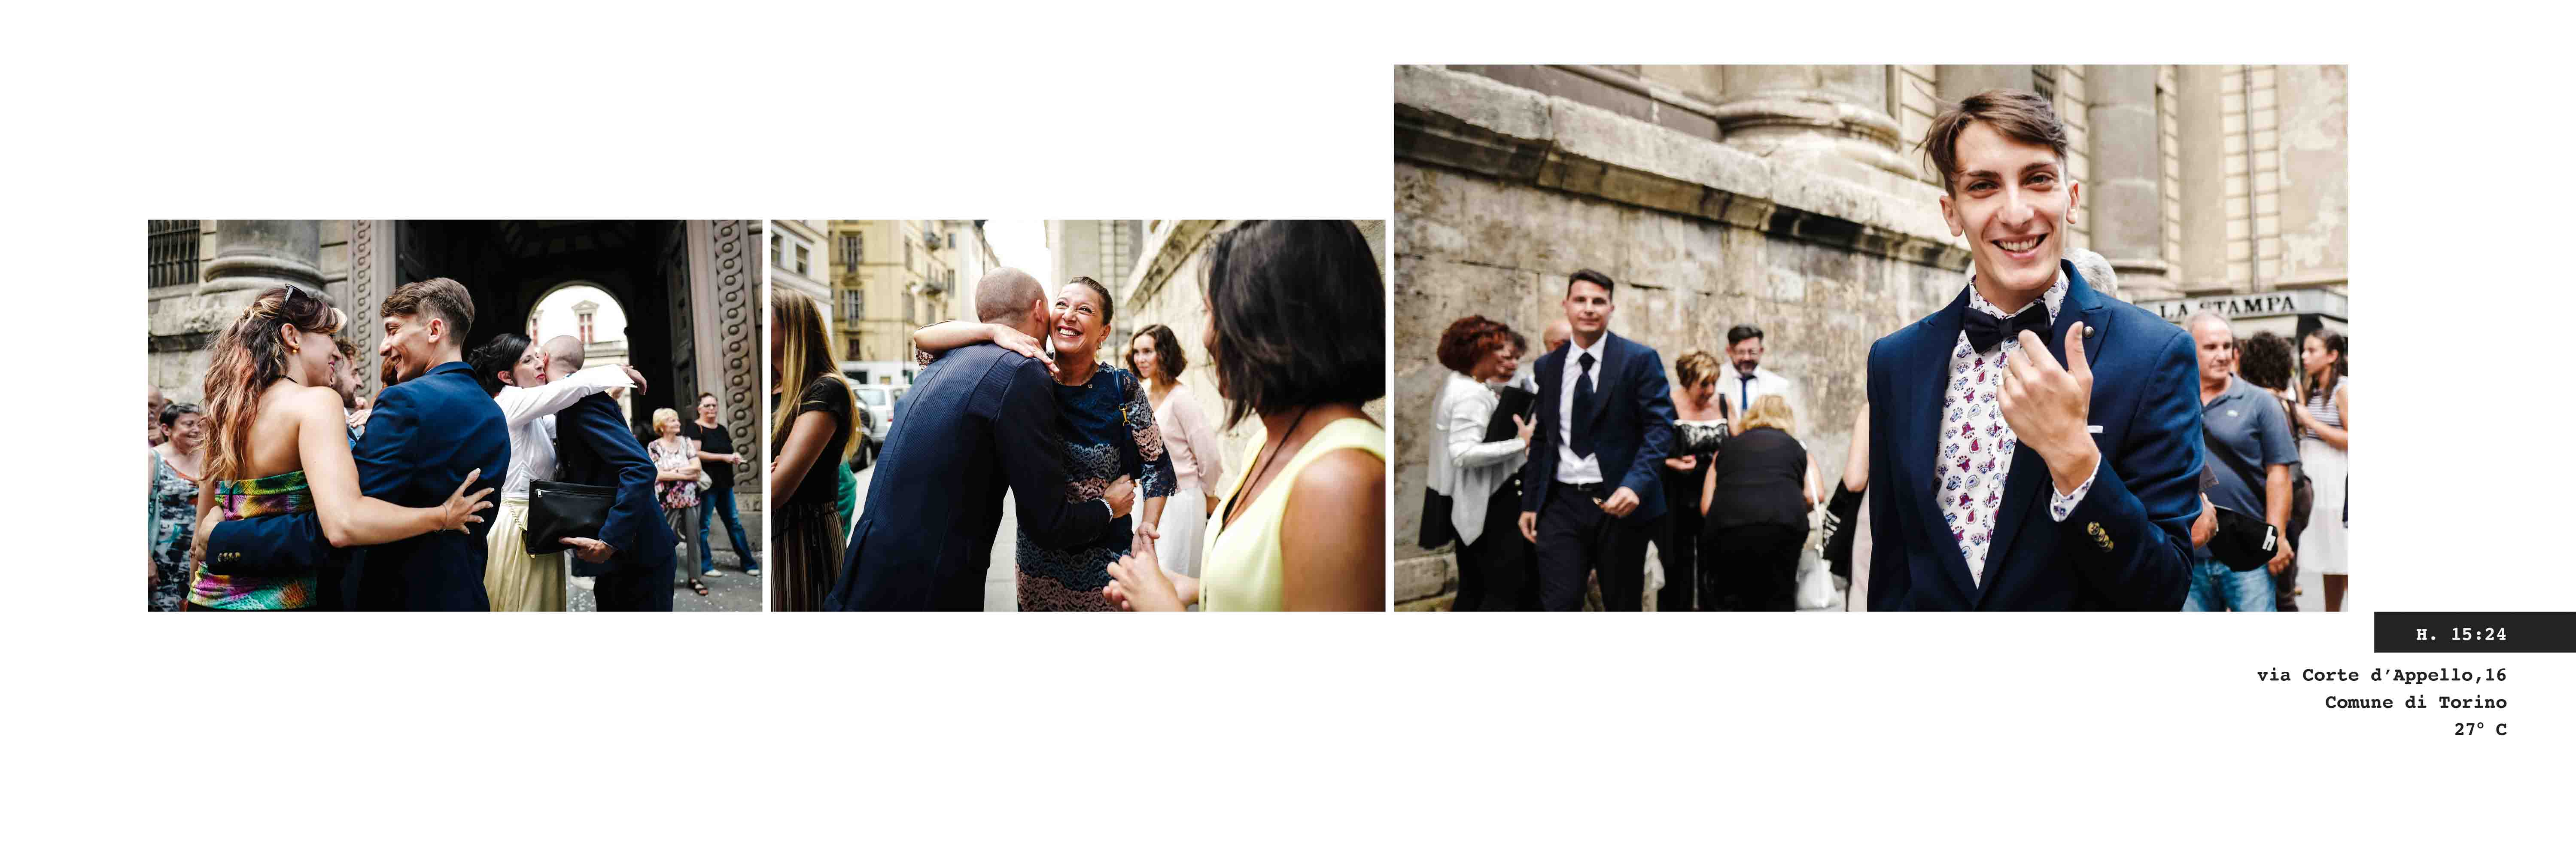 monicasica_fotografo matrimonio_torino_saluzzo_envets saluzzo_weddingday_weddingphotographer-2